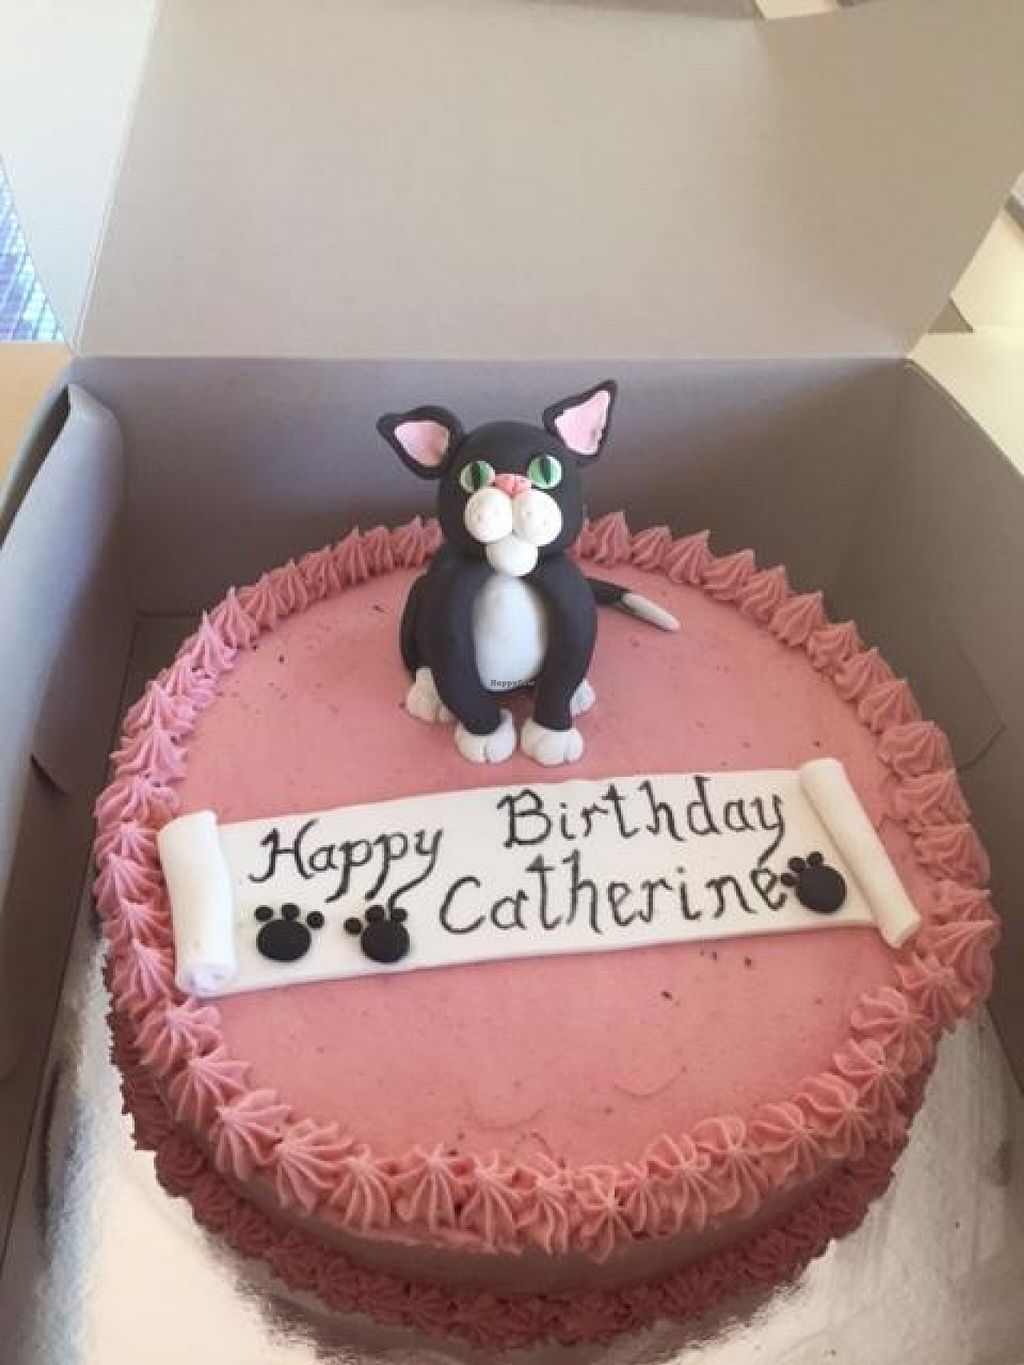 My Birthday Cake With Cat Design At OMV Bakery In Reservoir